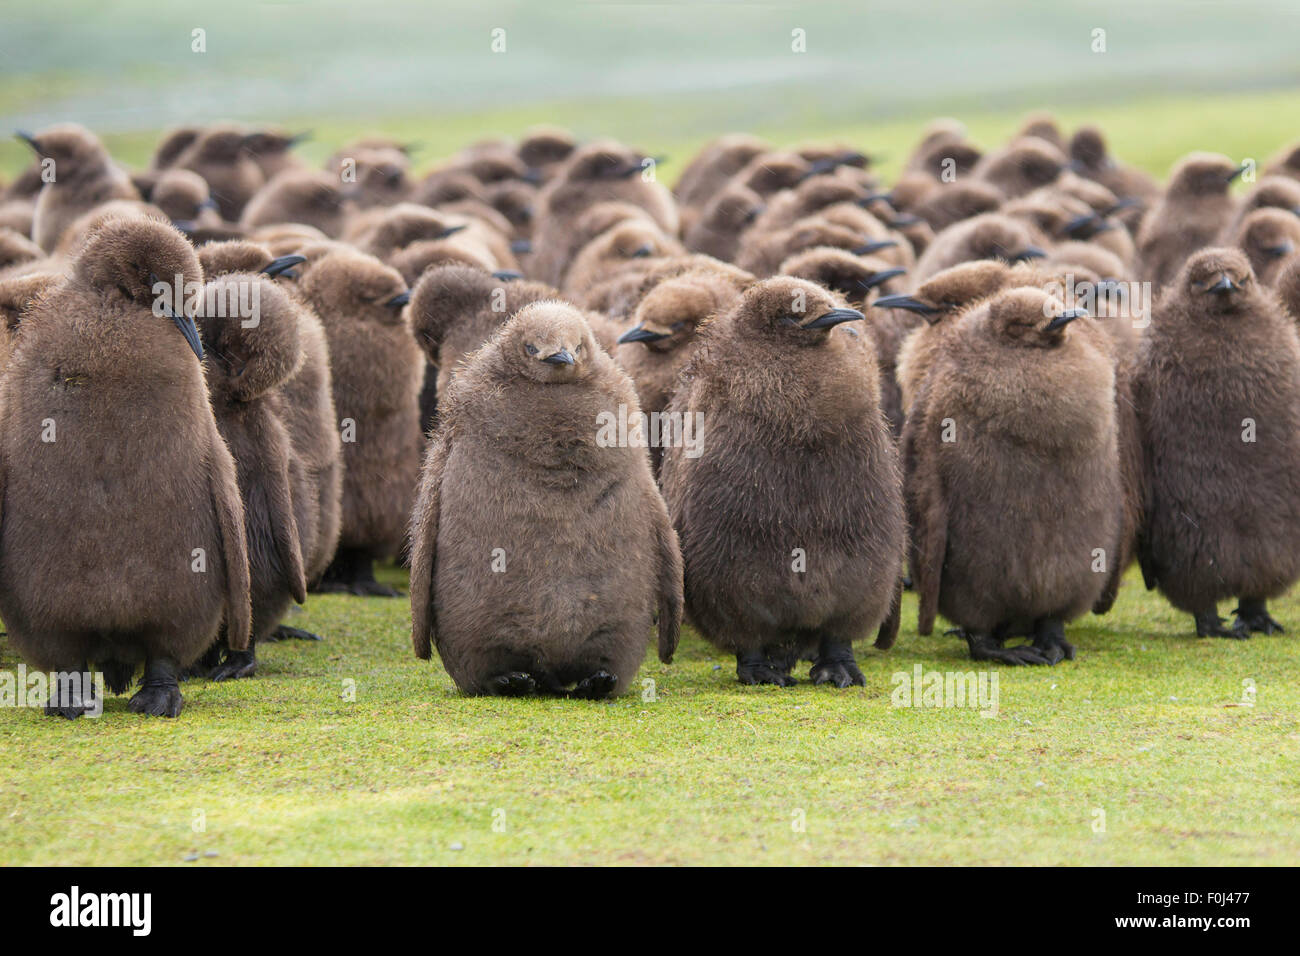 A large creche of King Penguin Chicks, huddled in the rain at Volunteer Point, Falkland Islands. - Stock Image